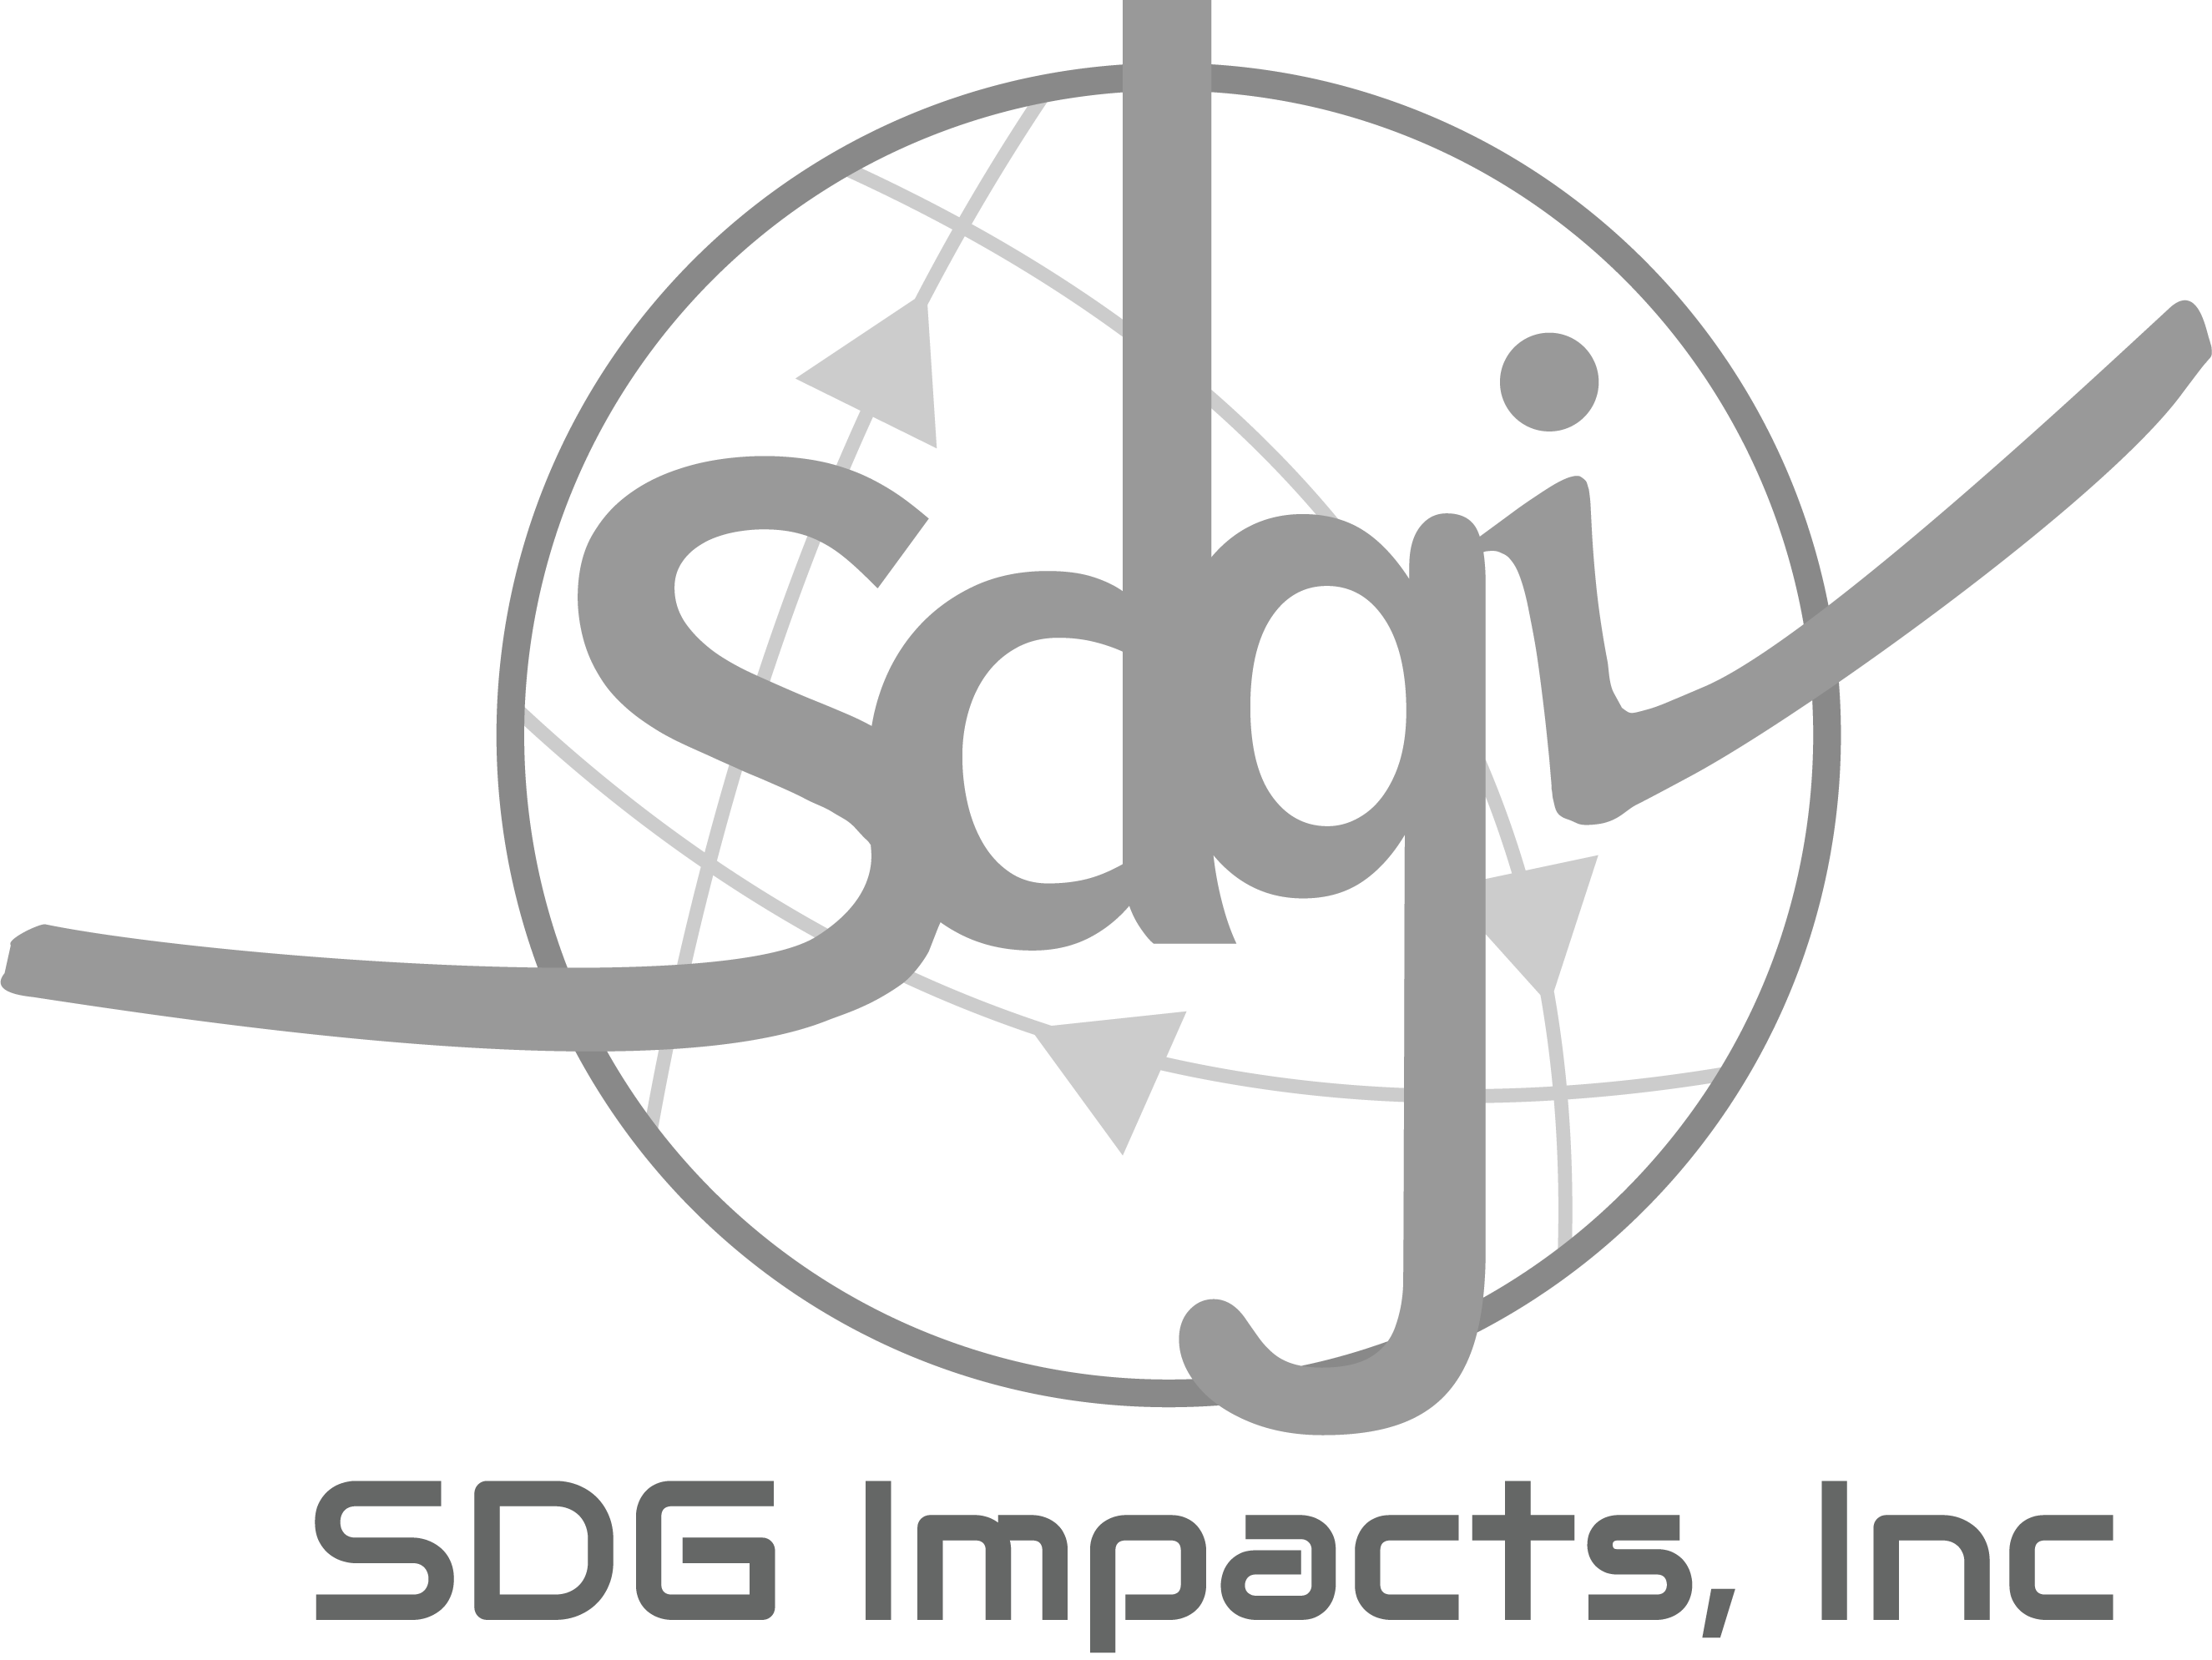 SDG Impacts